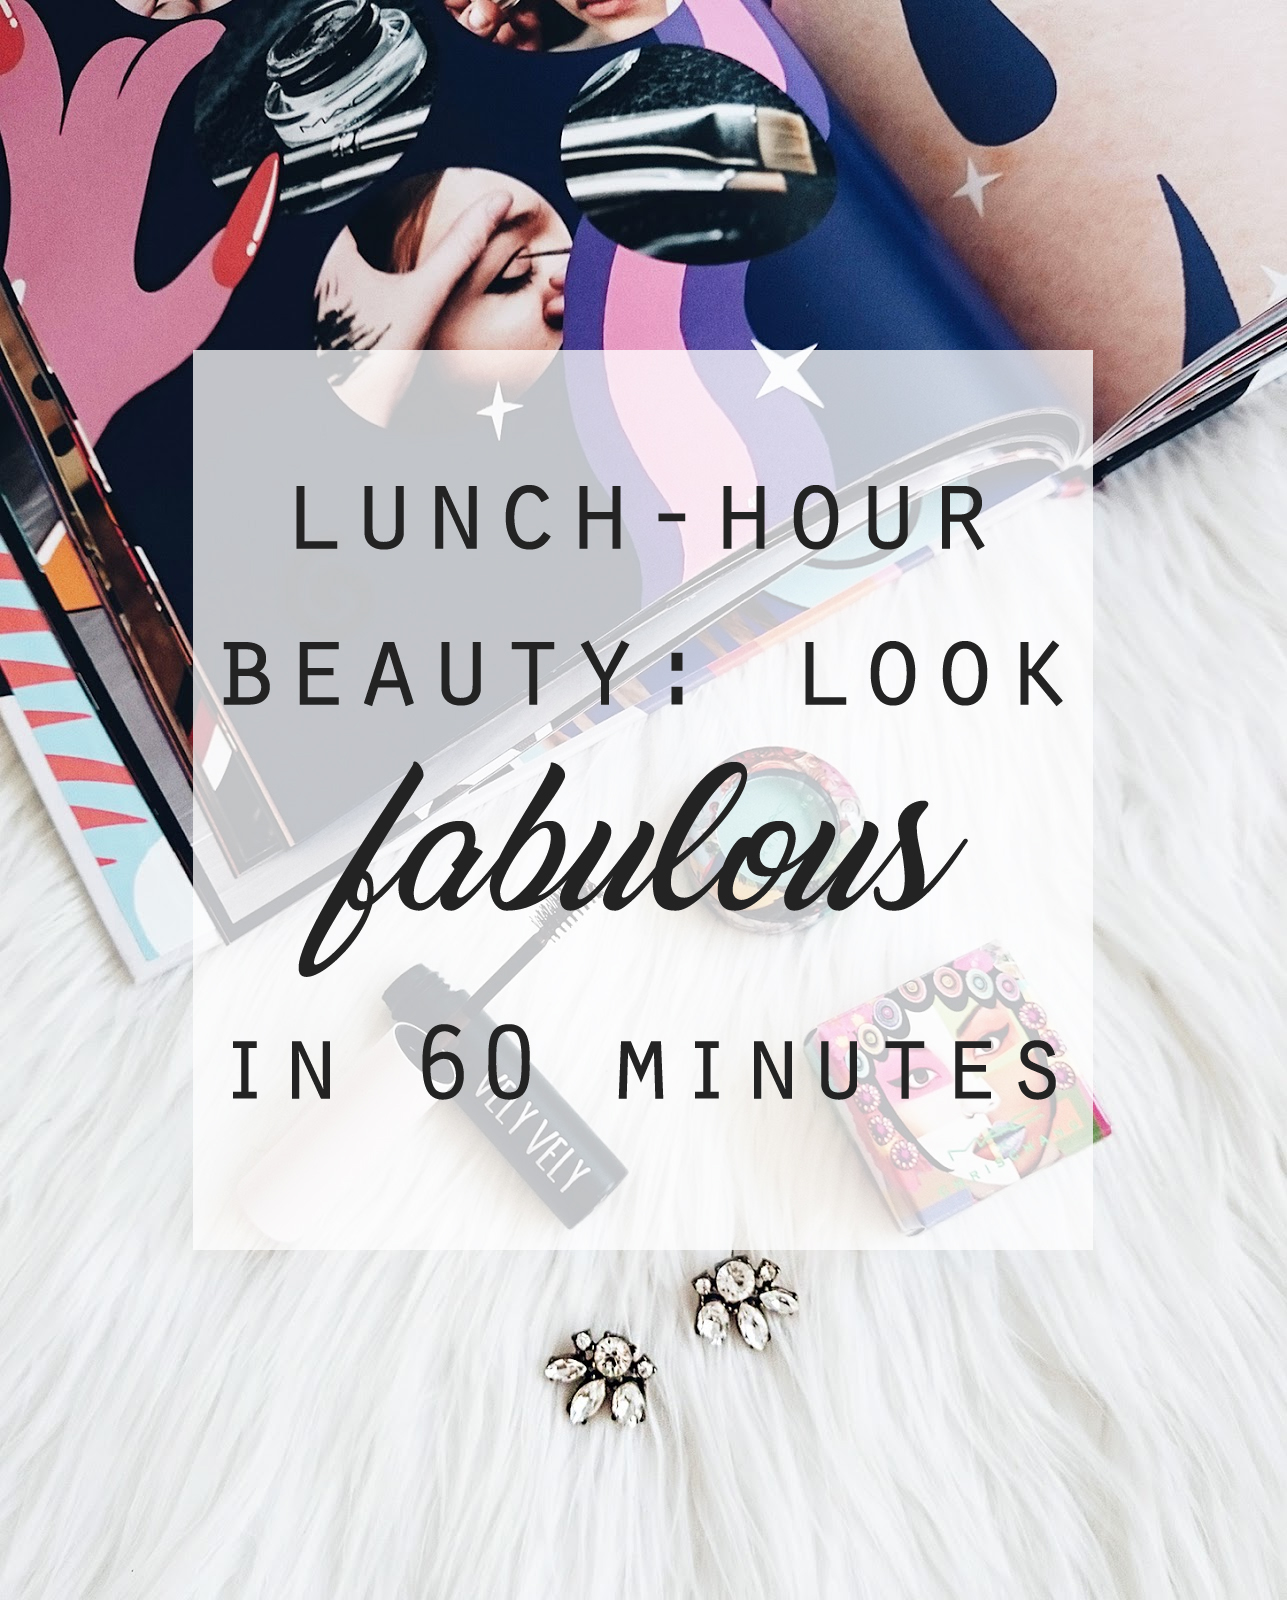 lunch-hour beauty